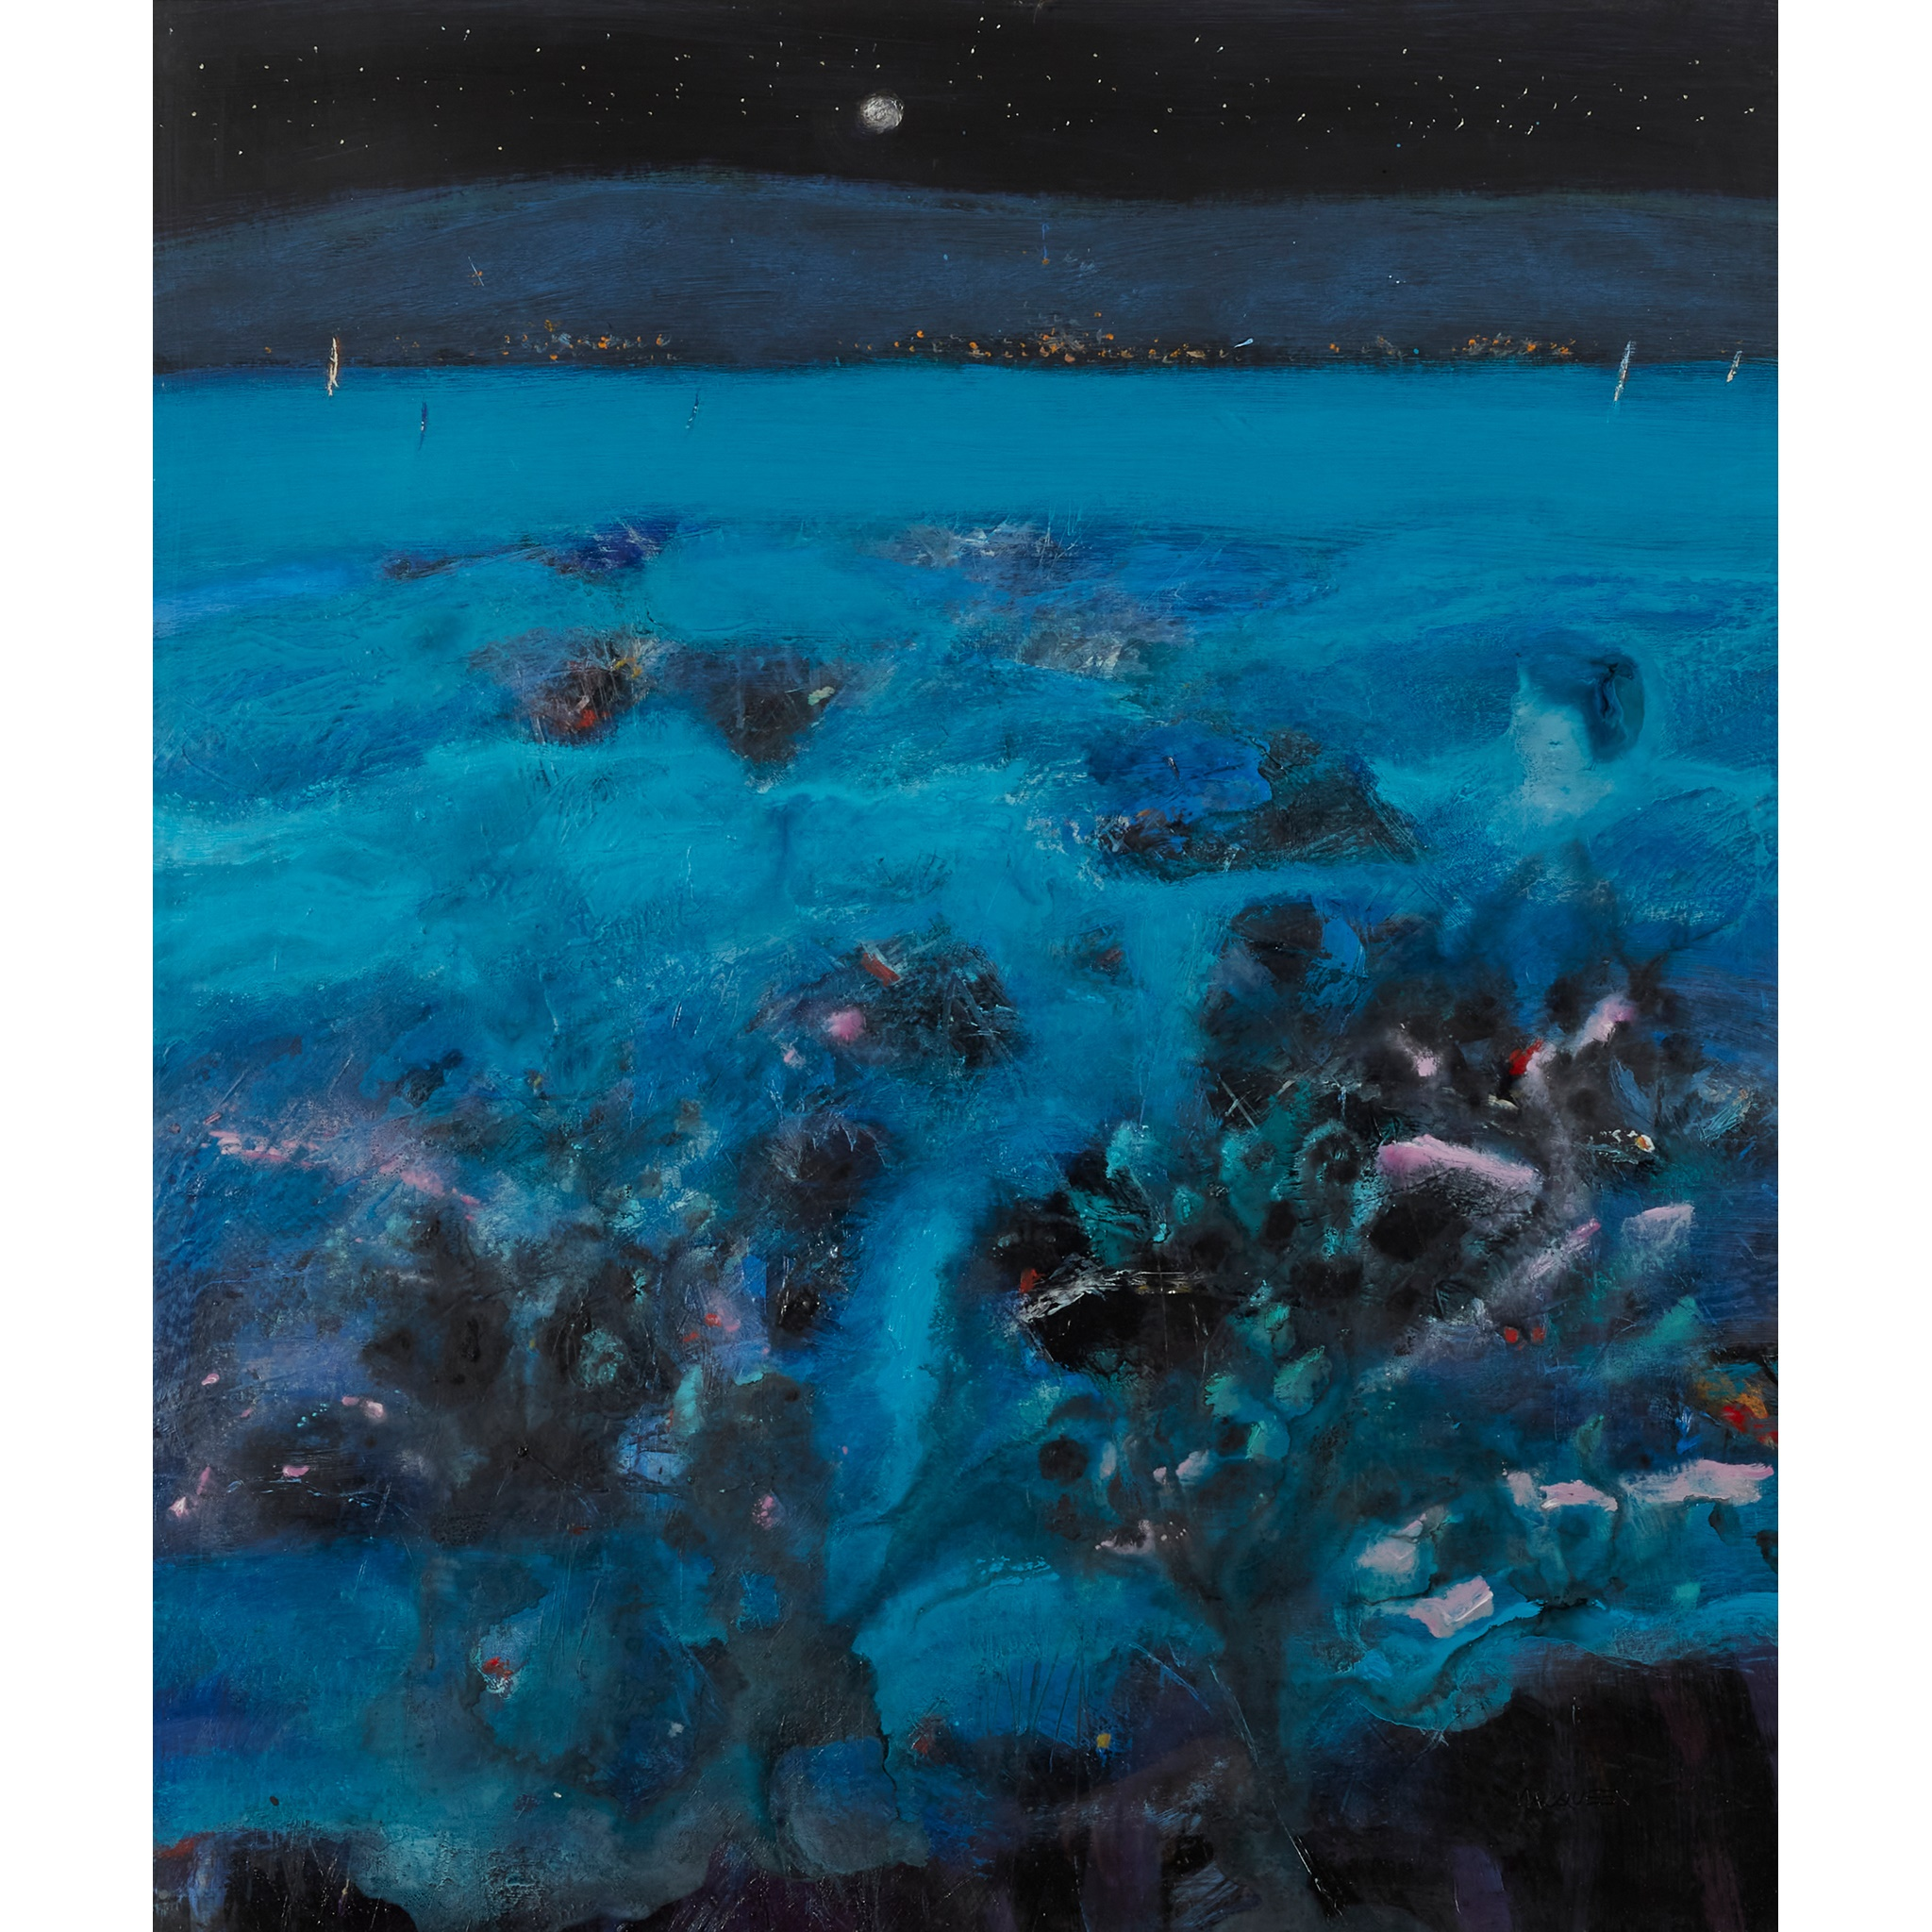 § CHARLES MACQUEEN R.S.W., R.G.I. (SCOTTISH 1940-) UNTITLED (SEASCAPE NOCTURNE)